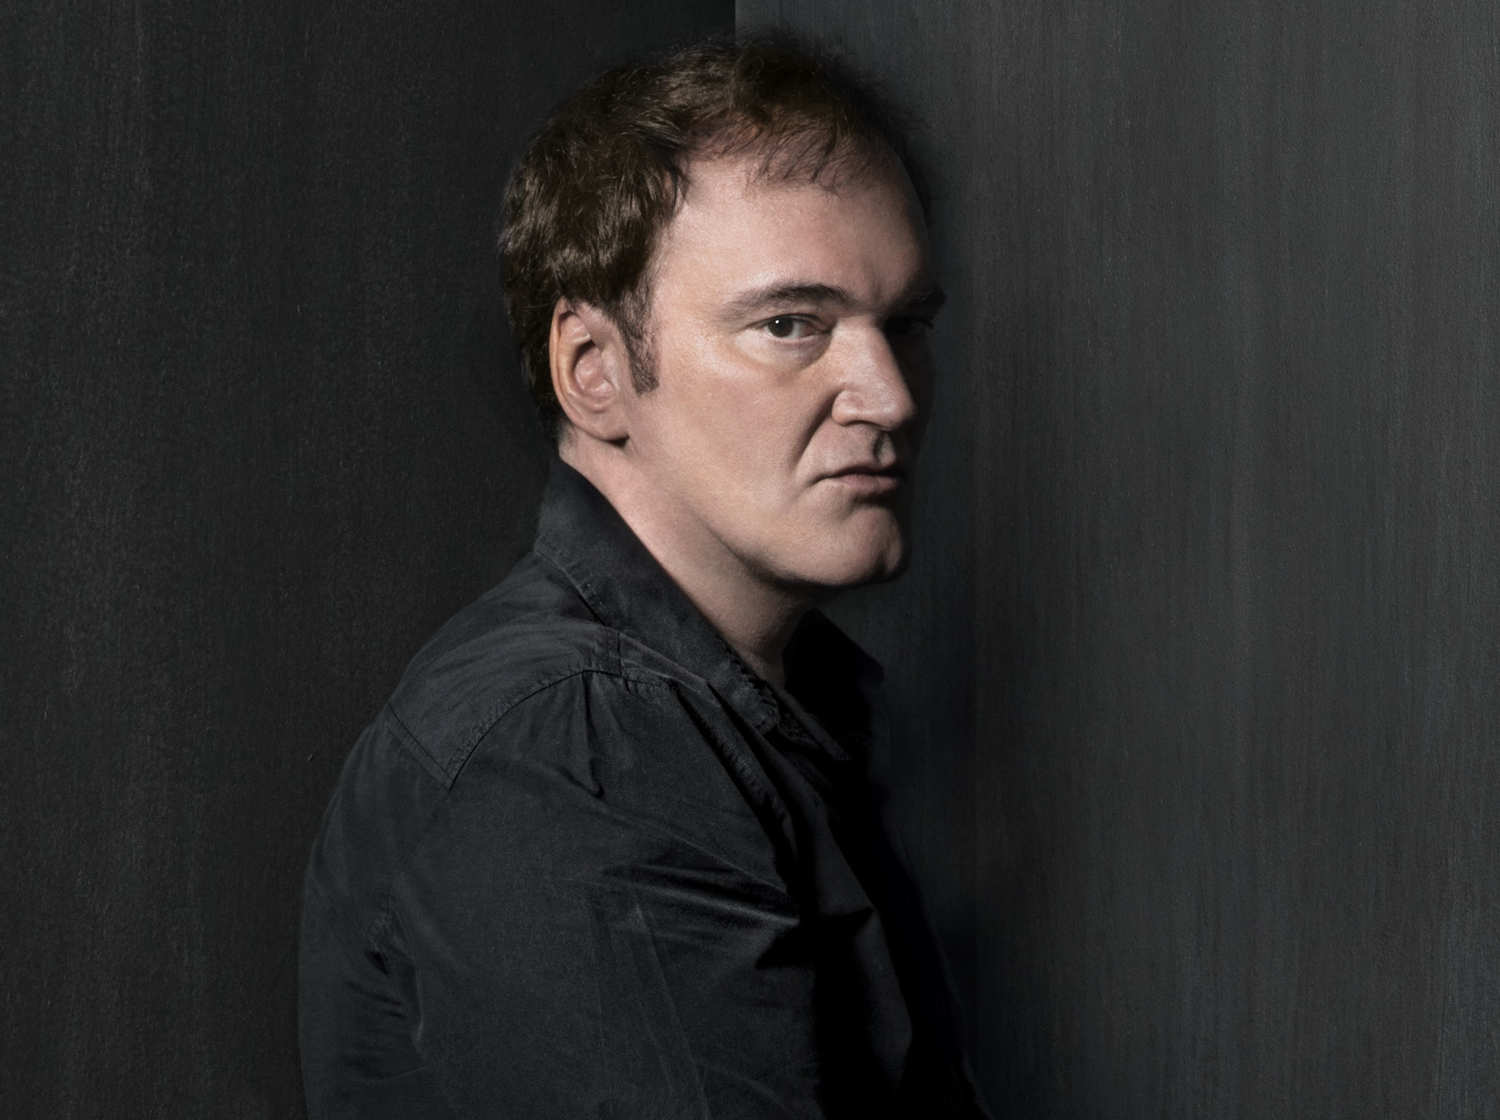 Quentin Tarantino Says He Will Retire After Two More Movies image